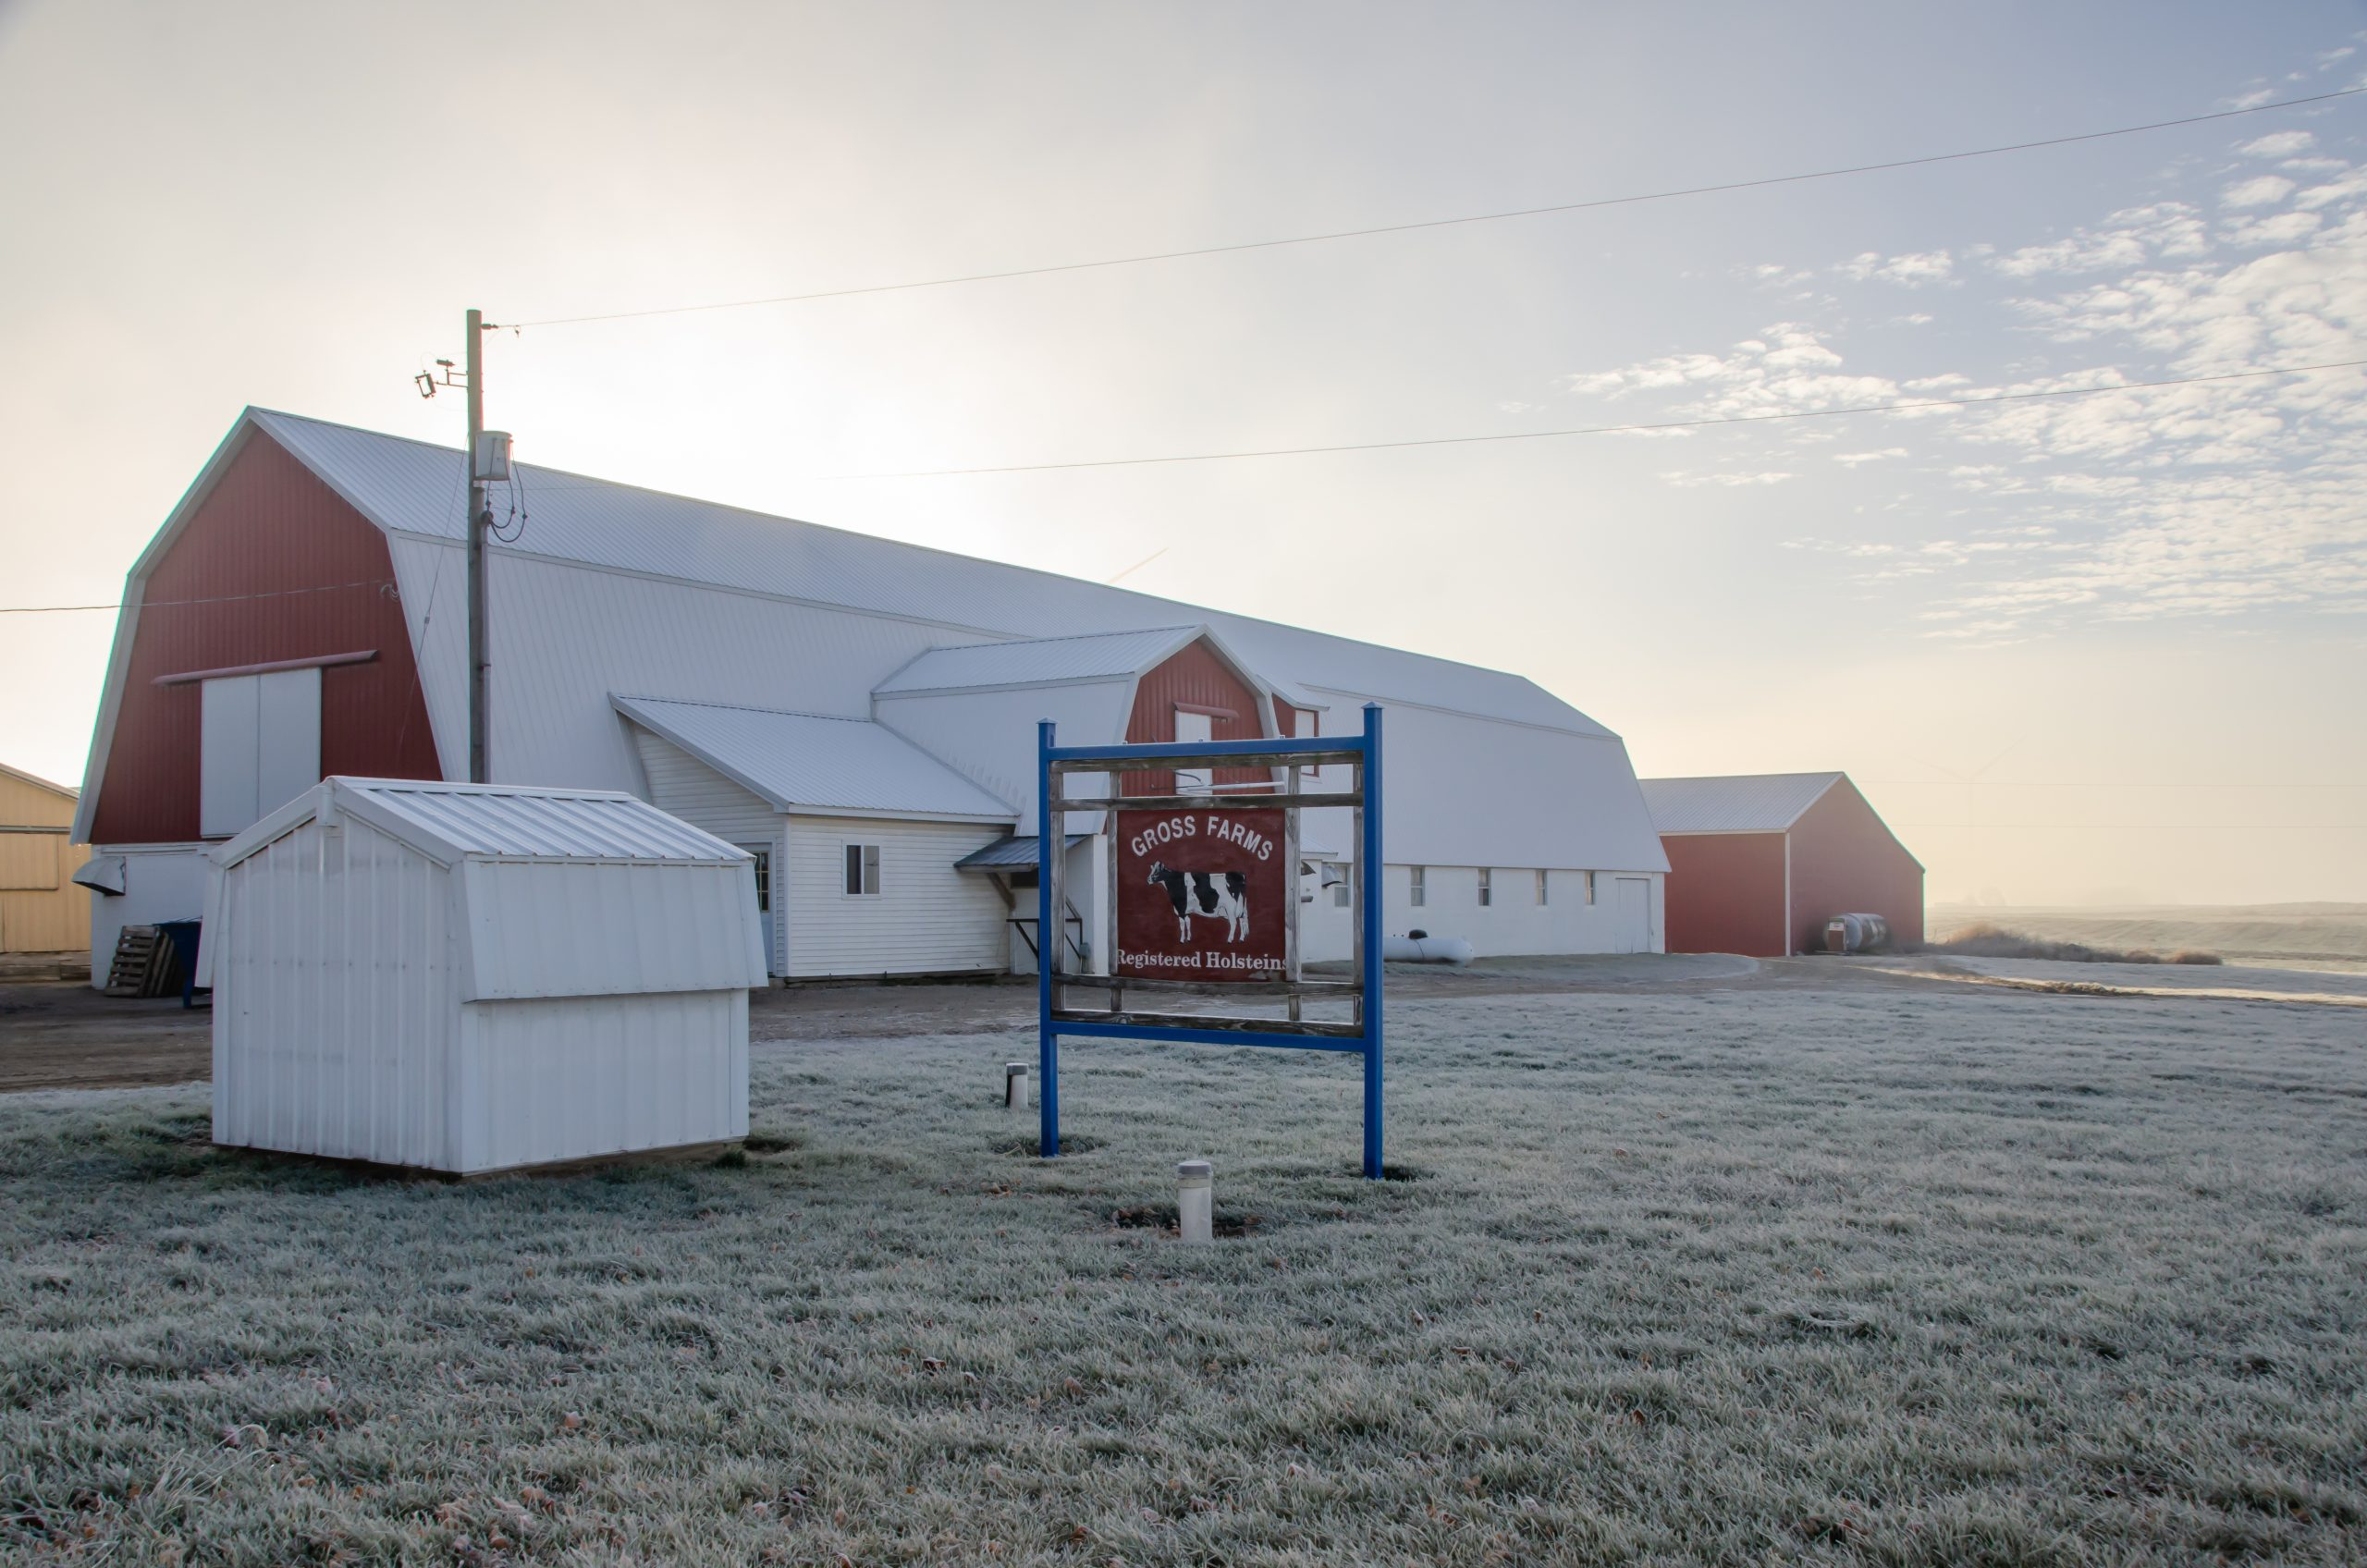 Gross Farms on a frosty morning.